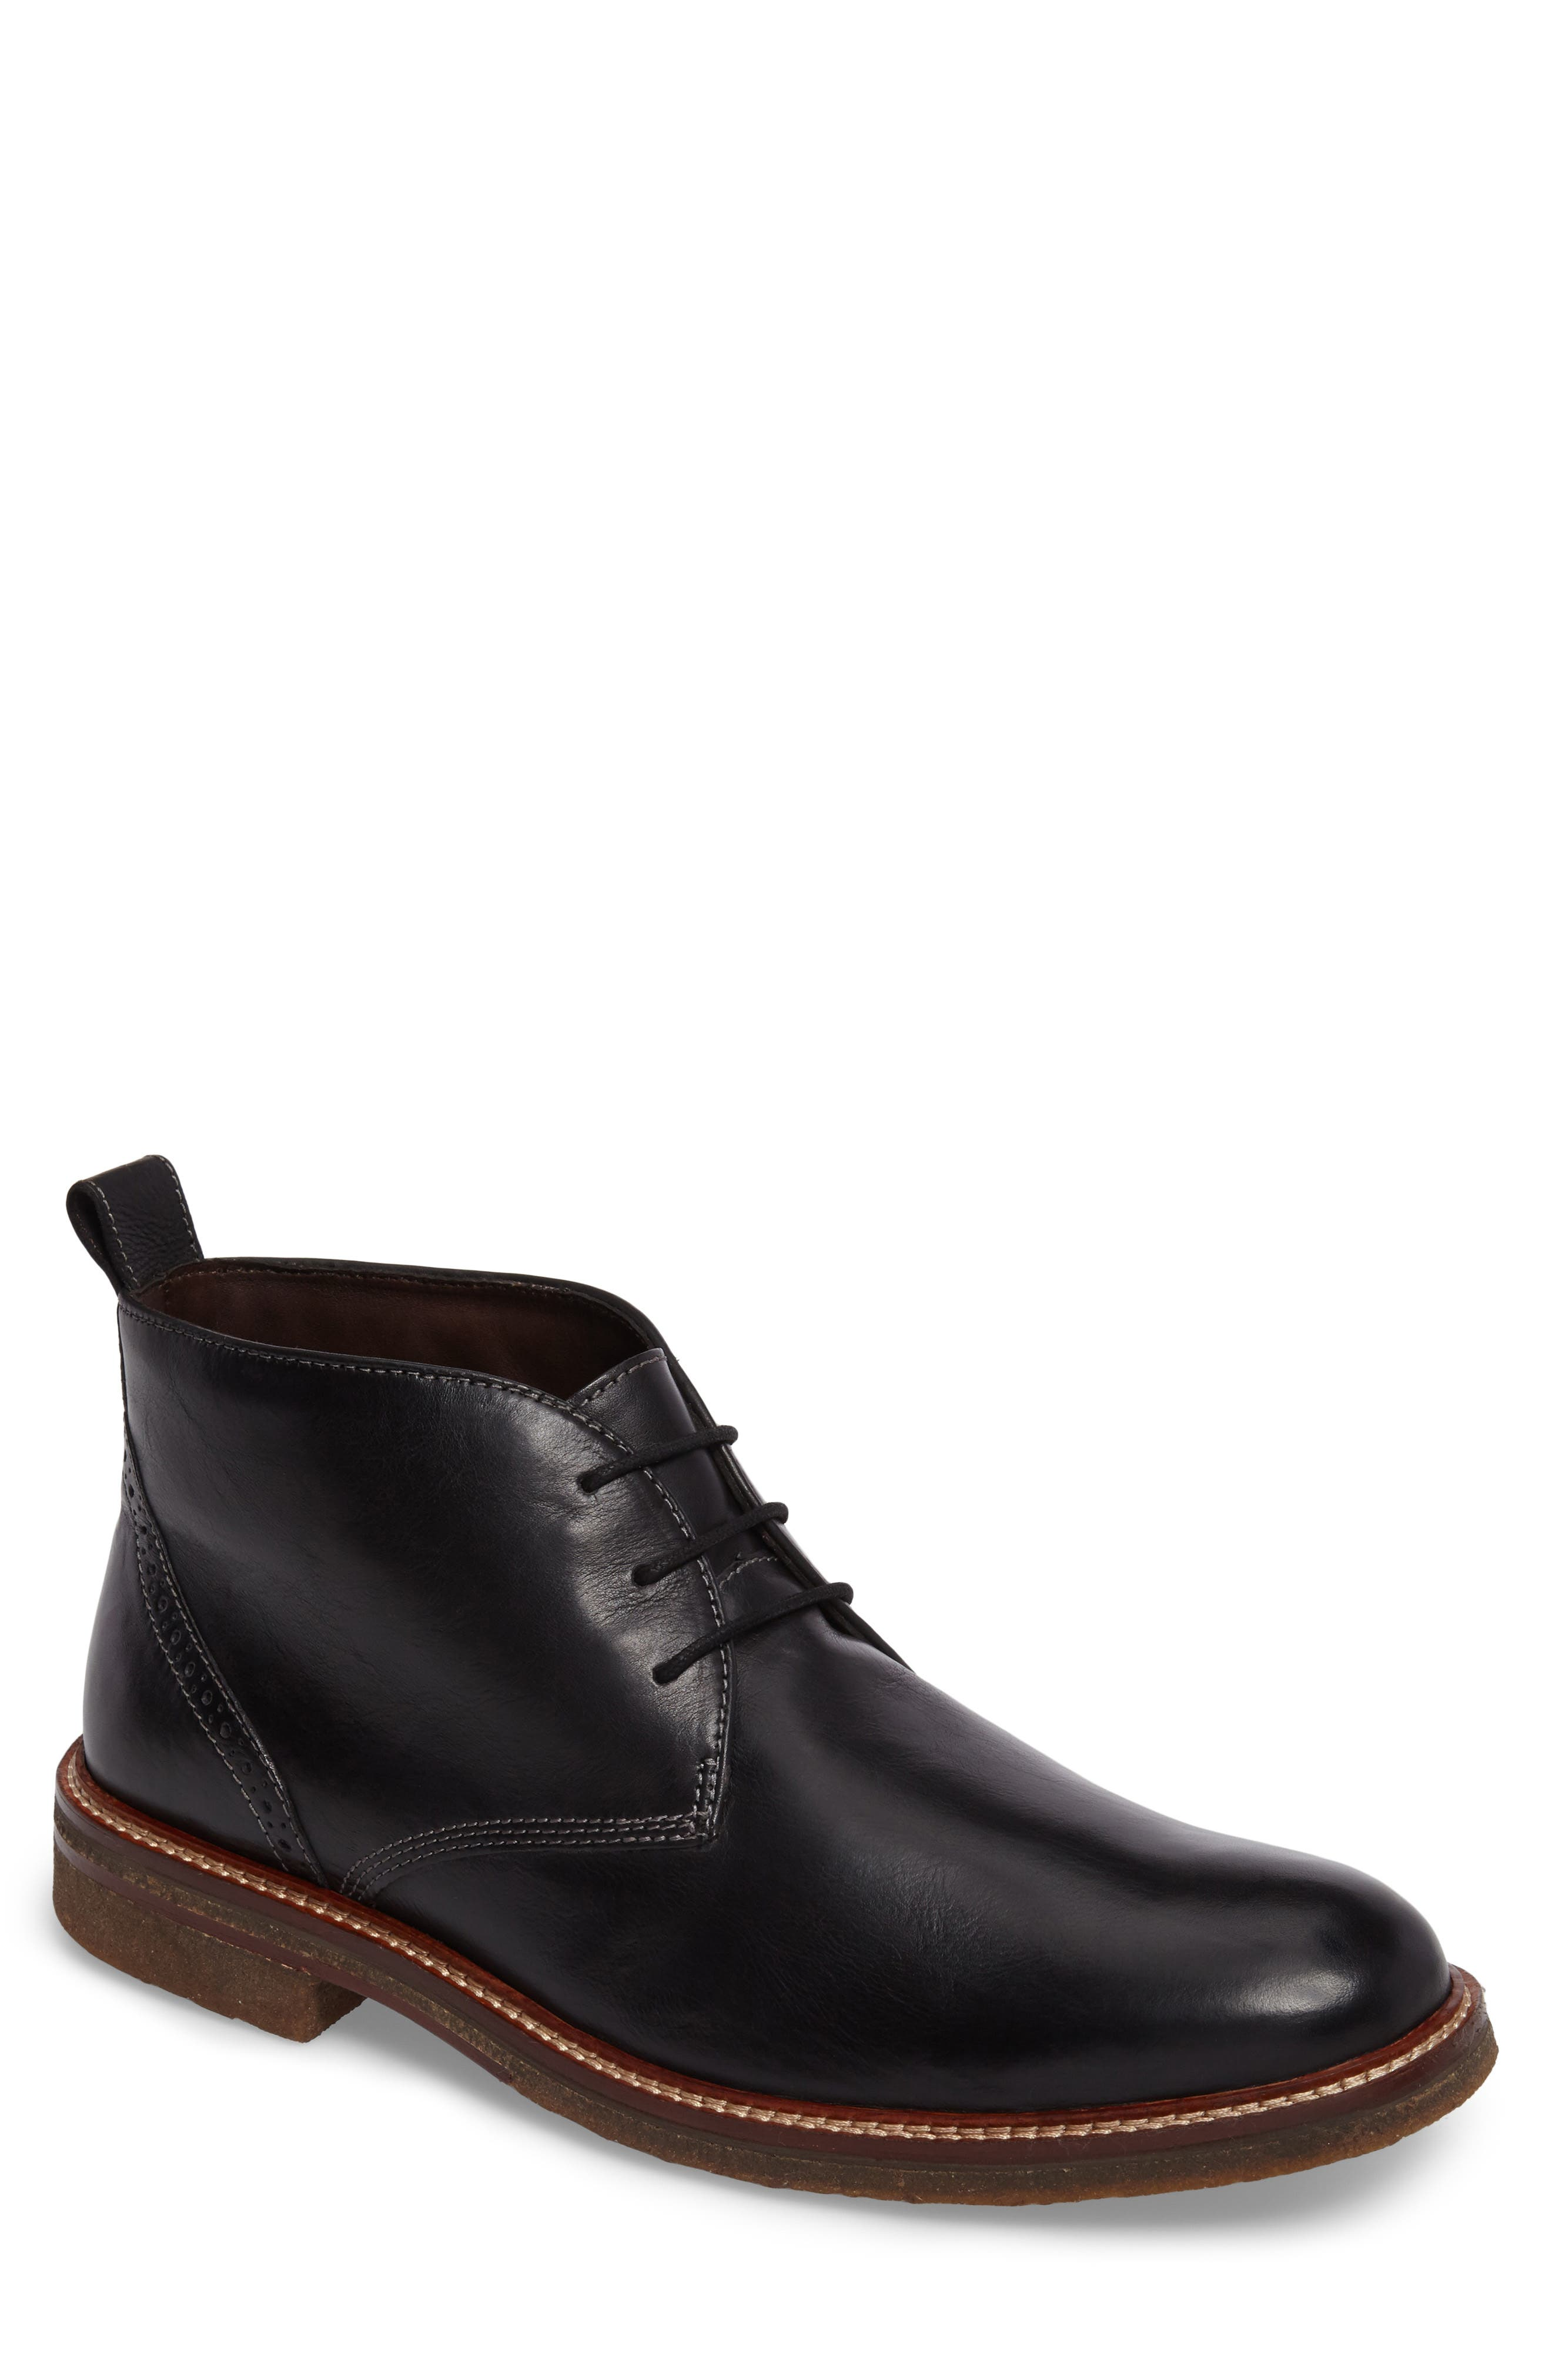 Forrester Chukka Boot,                         Main,                         color, Black Leather